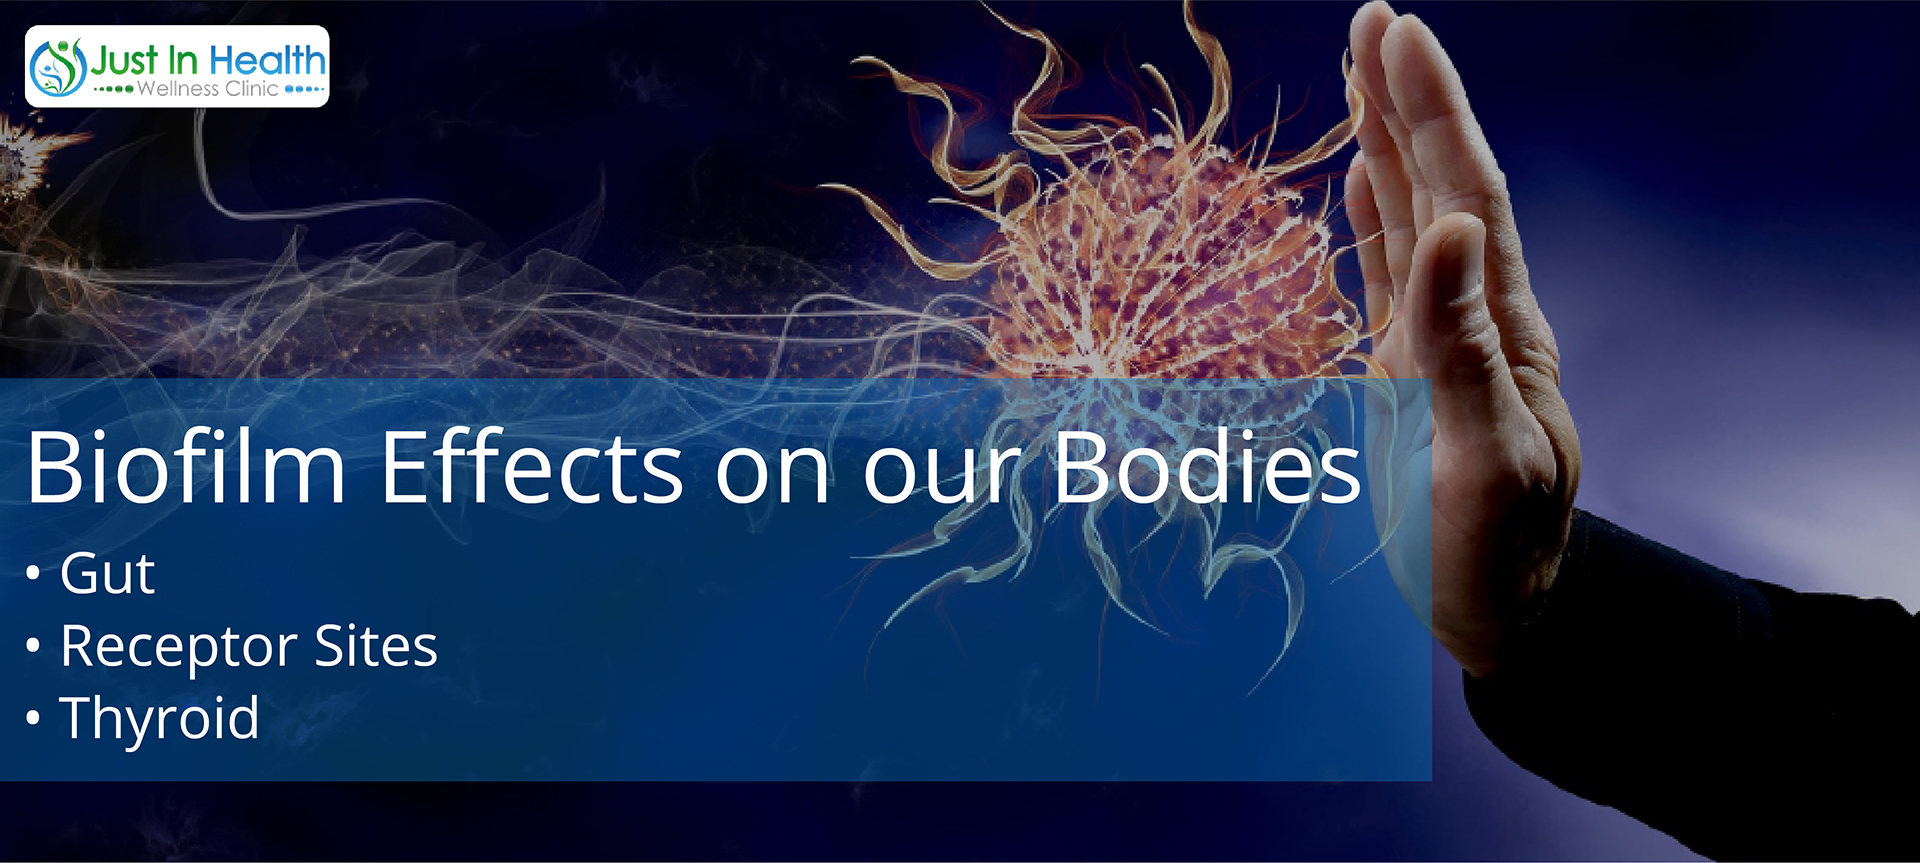 The effects of Biofilm on the body